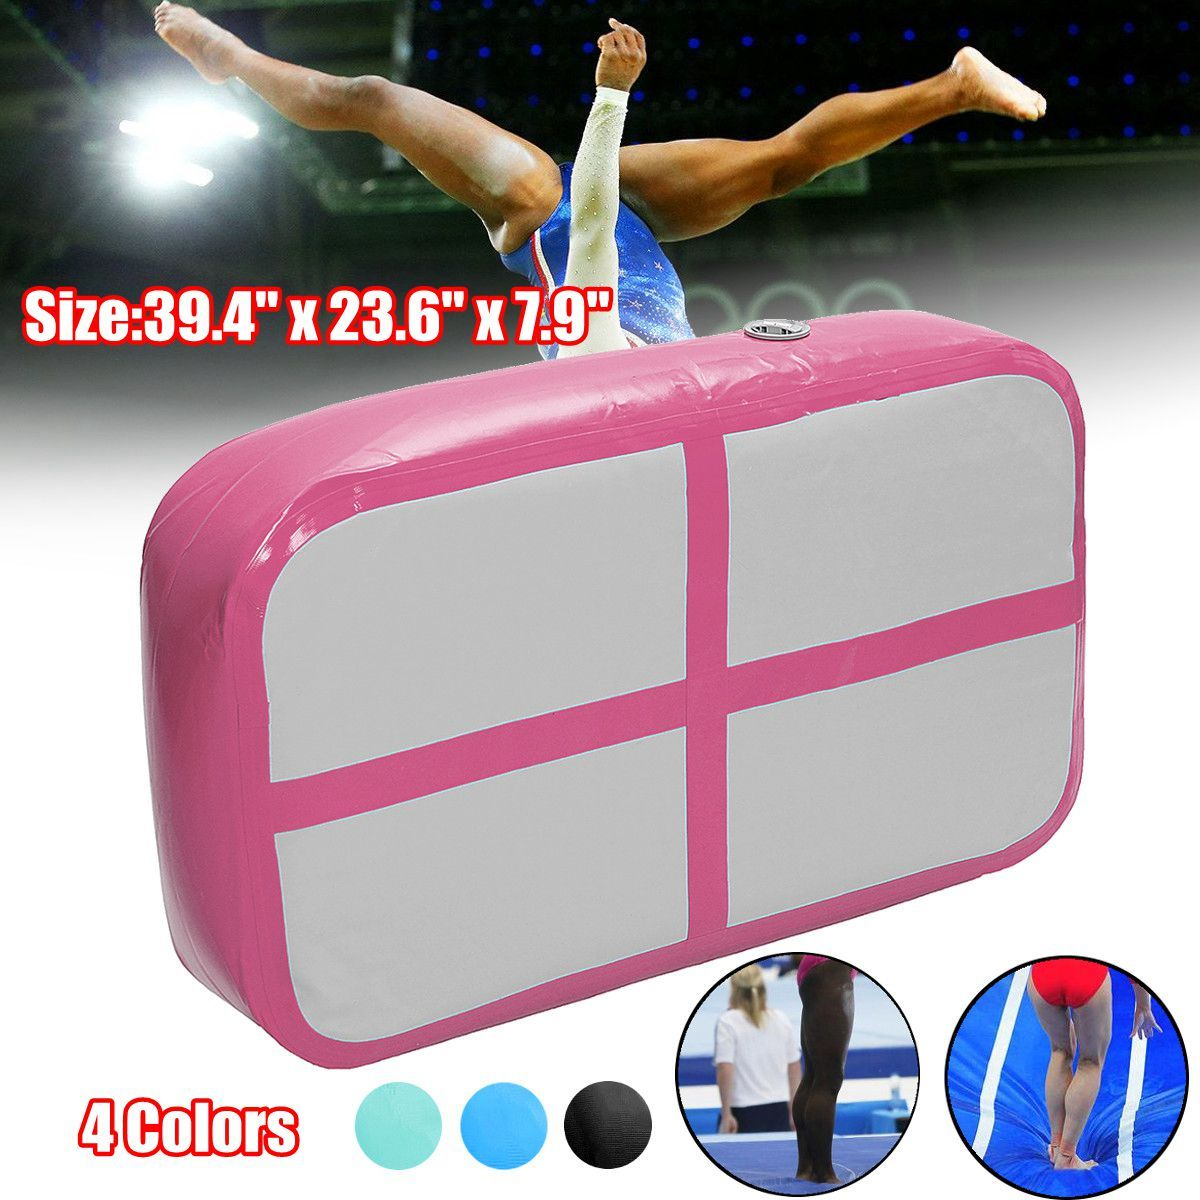 Air Track Floor Home Inflatable Gymnastics Training Tumbling Mat GYM for Kids